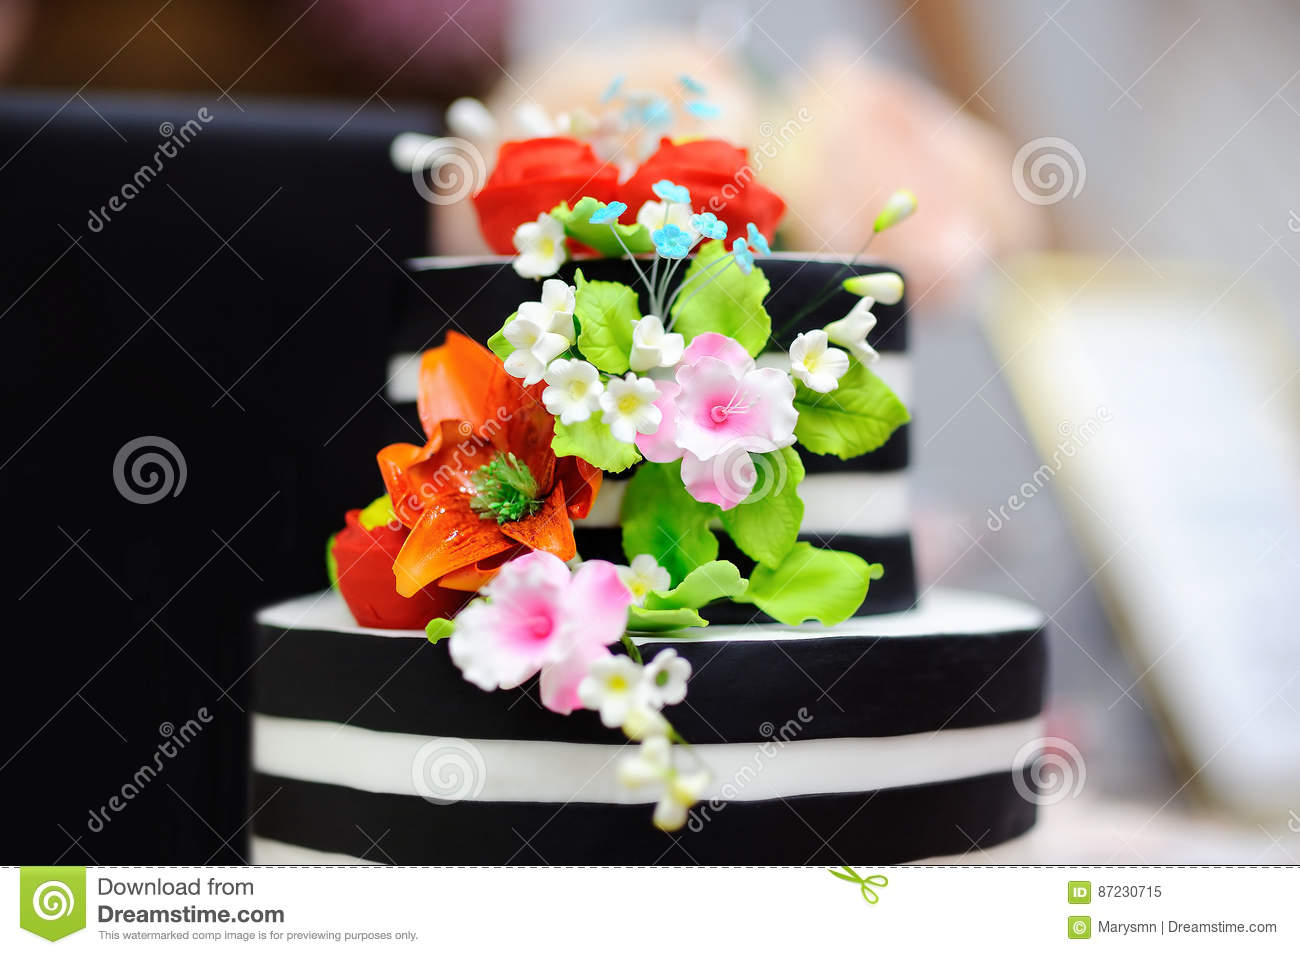 Black and white wedding cake decorated with sugar flowers stock download black and white wedding cake decorated with sugar flowers stock image image of closeup mightylinksfo